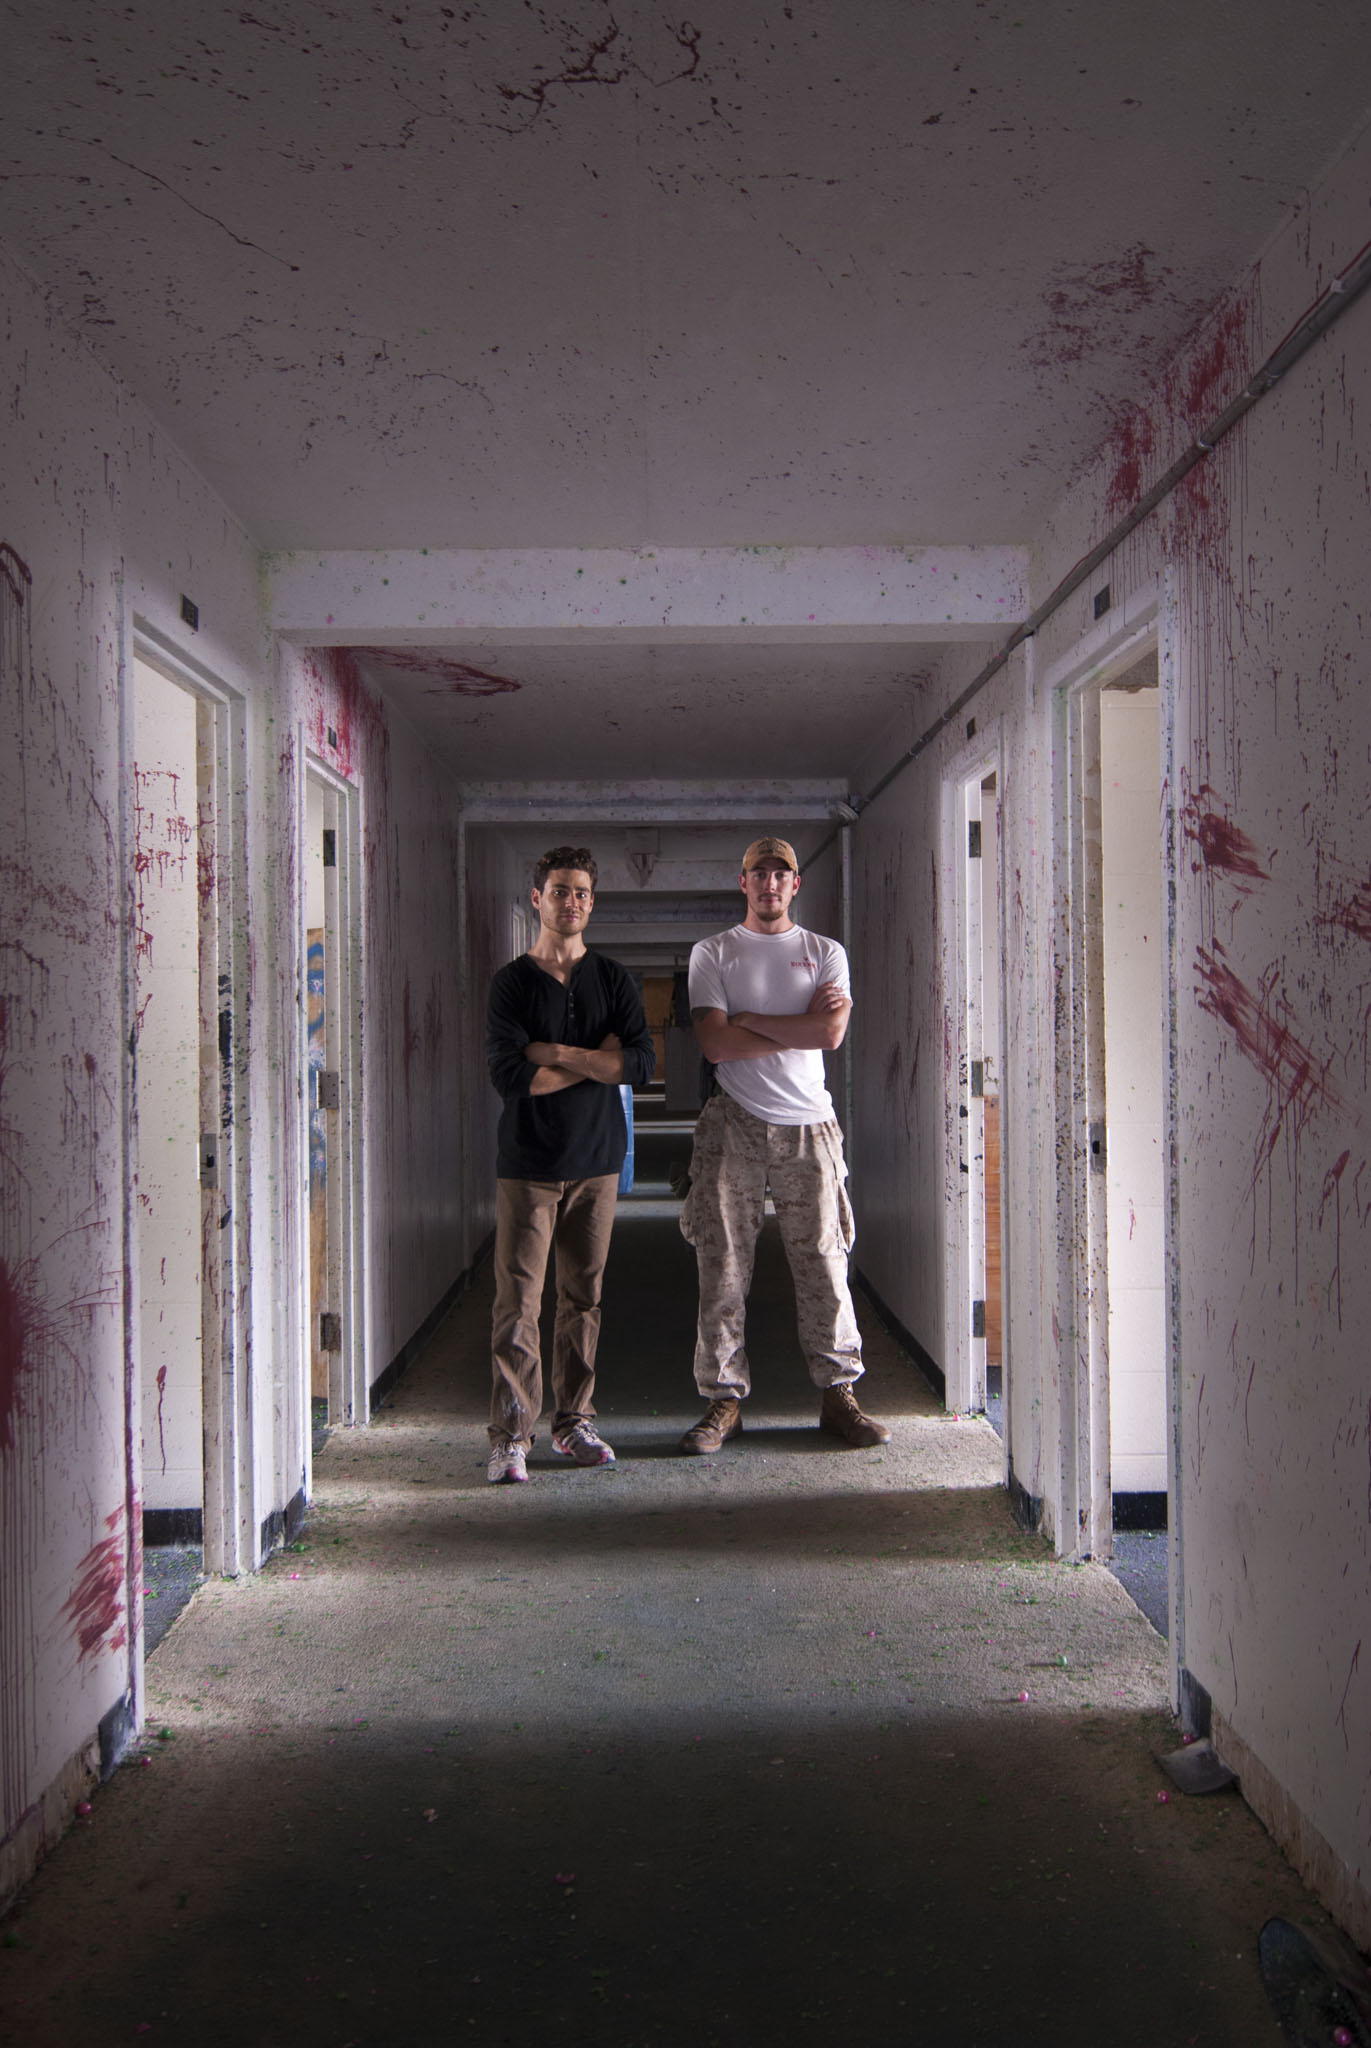 Matt Finn (left) partnered with Corporal Clinton McMahan (right), U.S. Marine Corp veteran, from whom he received hands-on training of military observational techniques. They focused on methods used to identify threats in indoor and urban conditions, as these are the most common environments veterans will encounter upon their return to civilian life.